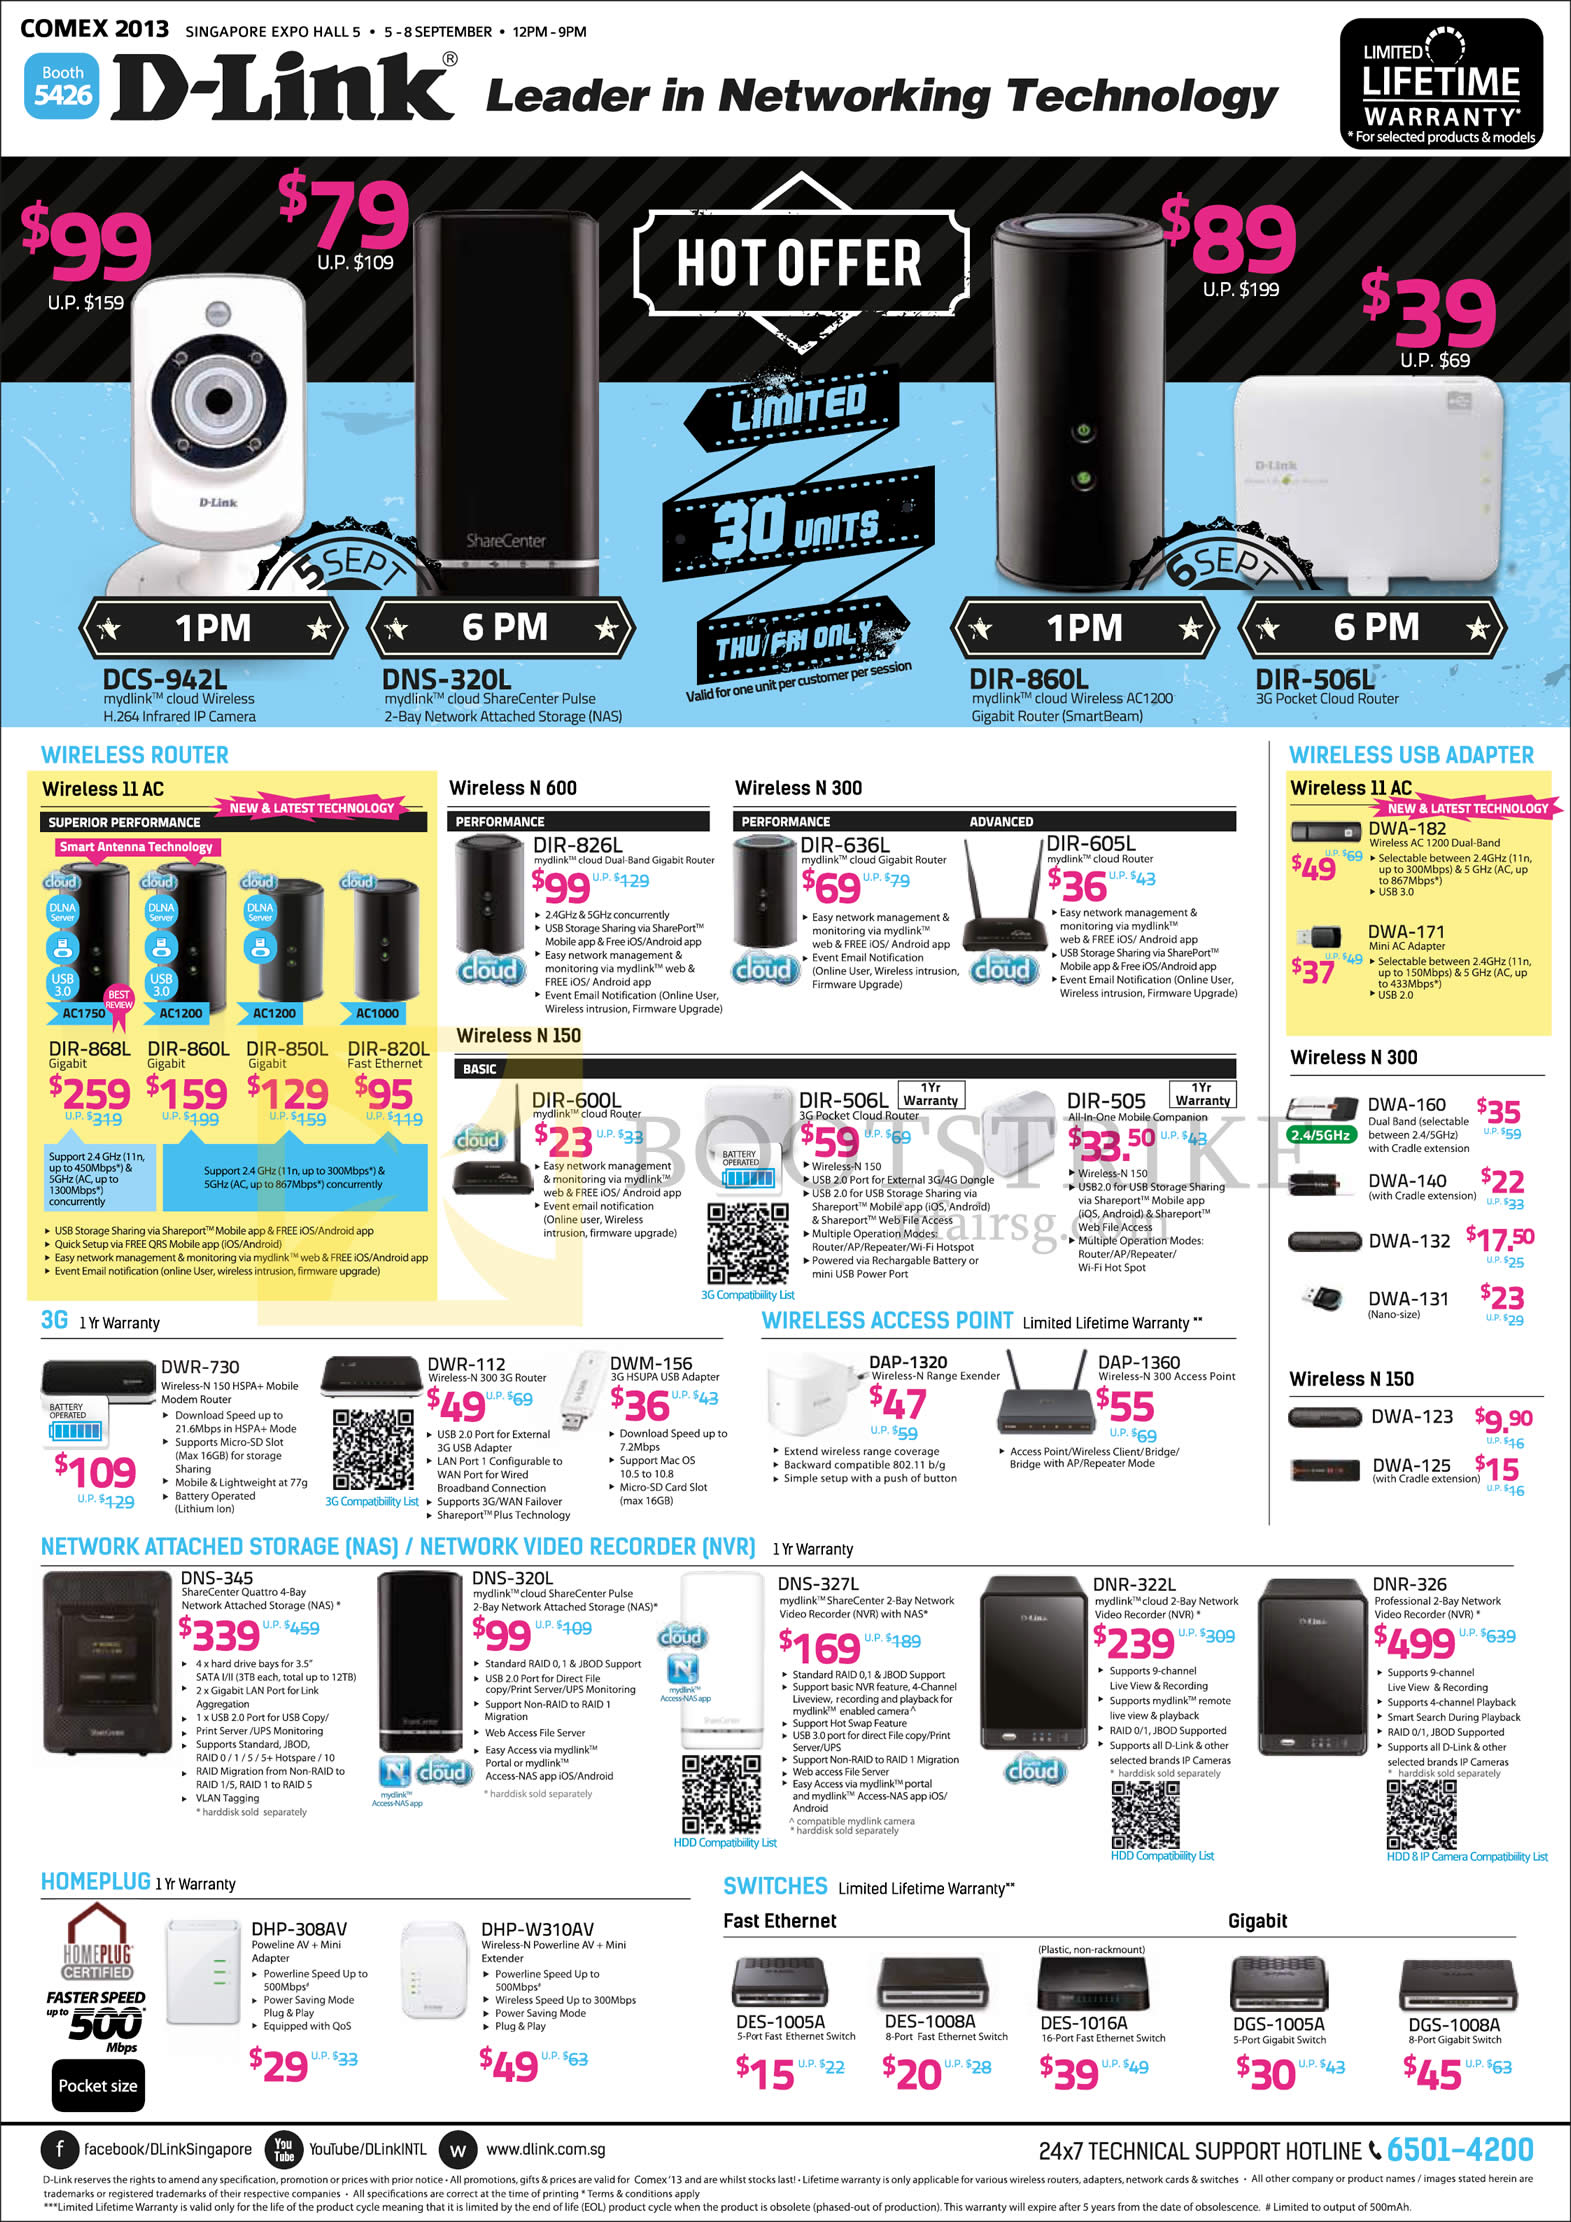 COMEX 2013 price list image brochure of D-Link Networking Routers, Wireless USB Adapters, NAS, HomePlug, Switches, Network Video Recorder, AC